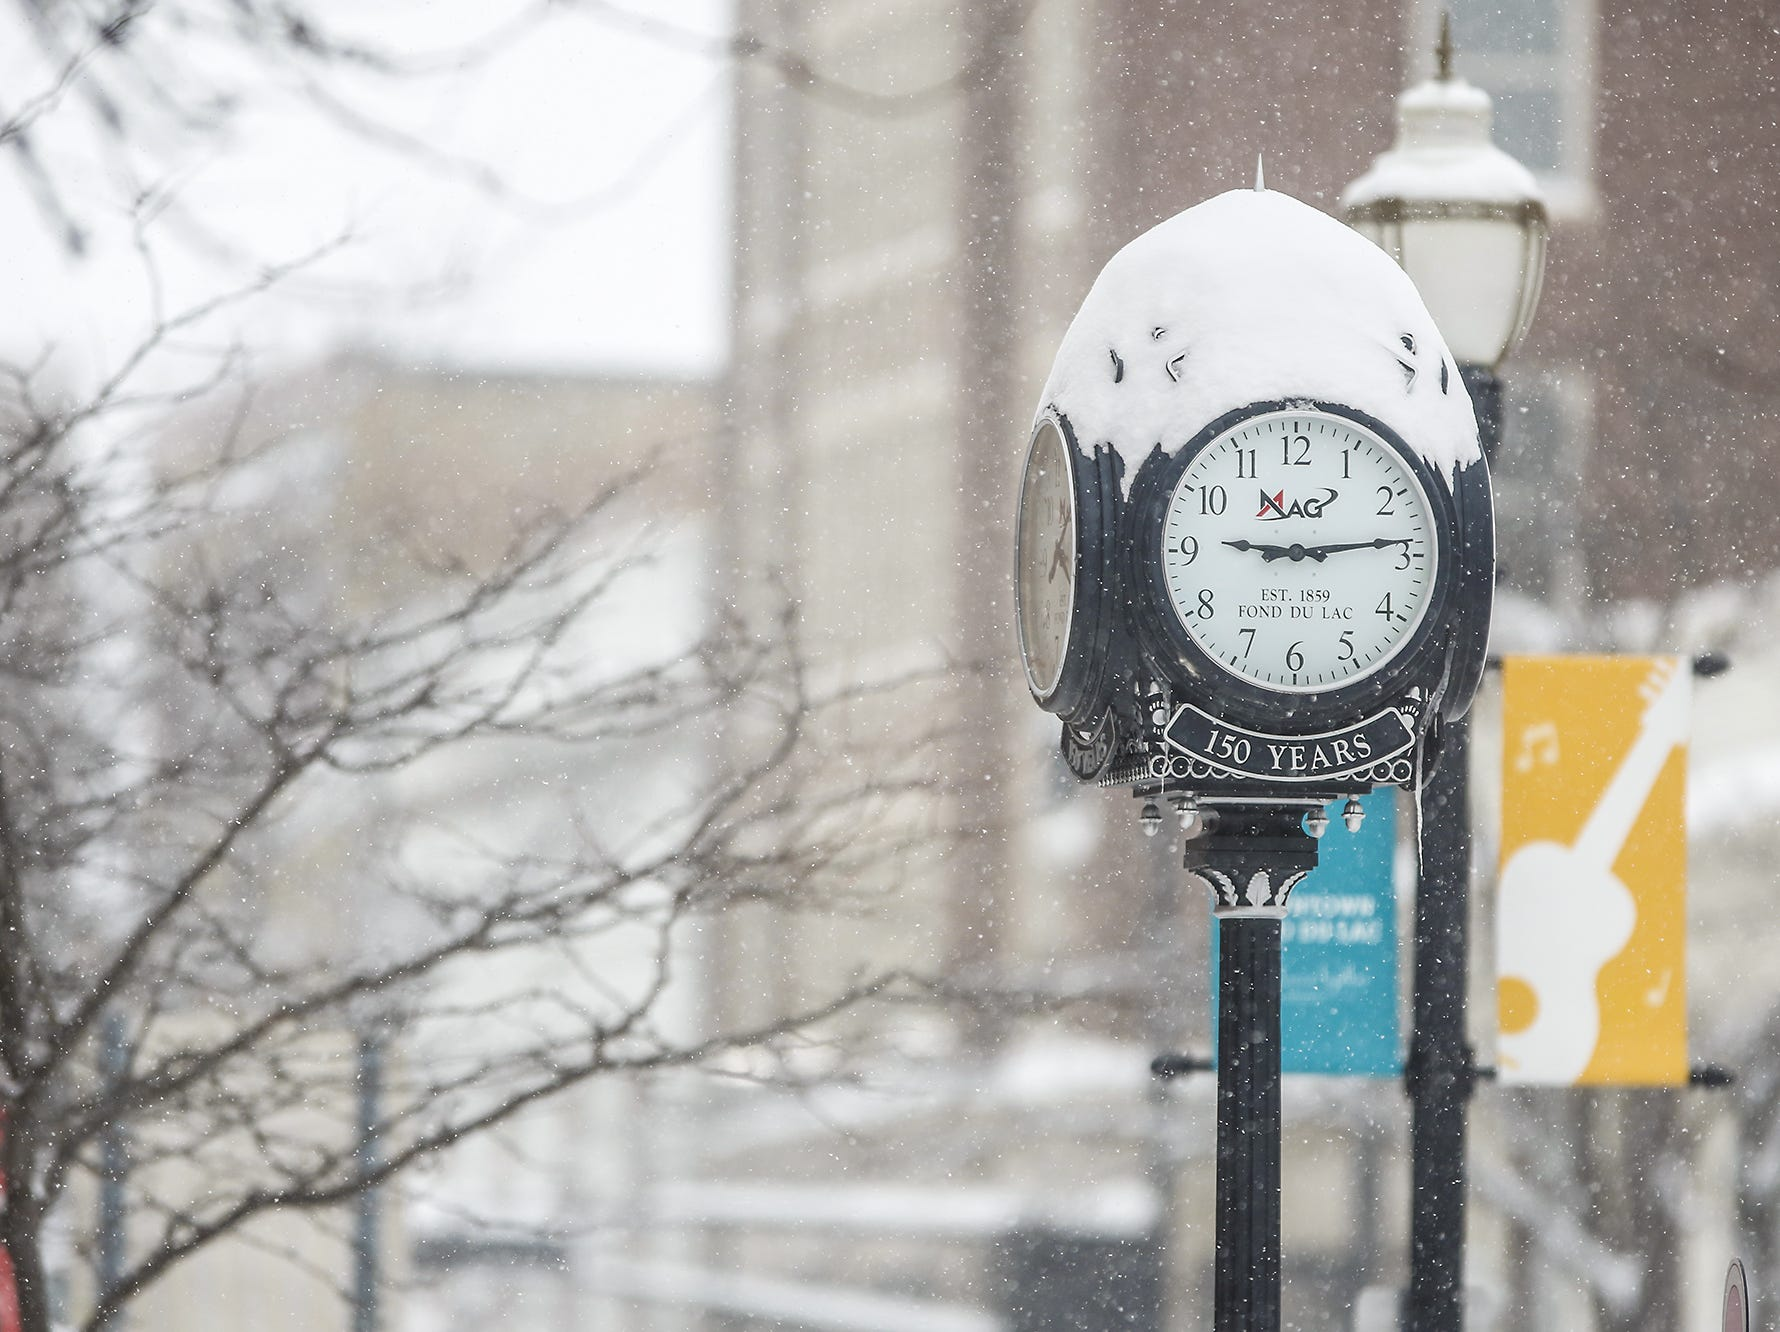 Snow falls Monday, Jan. 28, 2019, in downtown Fond dulac during a snow storm that hampered travel and closed businesses and schools in the Fond du Lac area. This was the Fond du Lac area's second snow storm in five days.